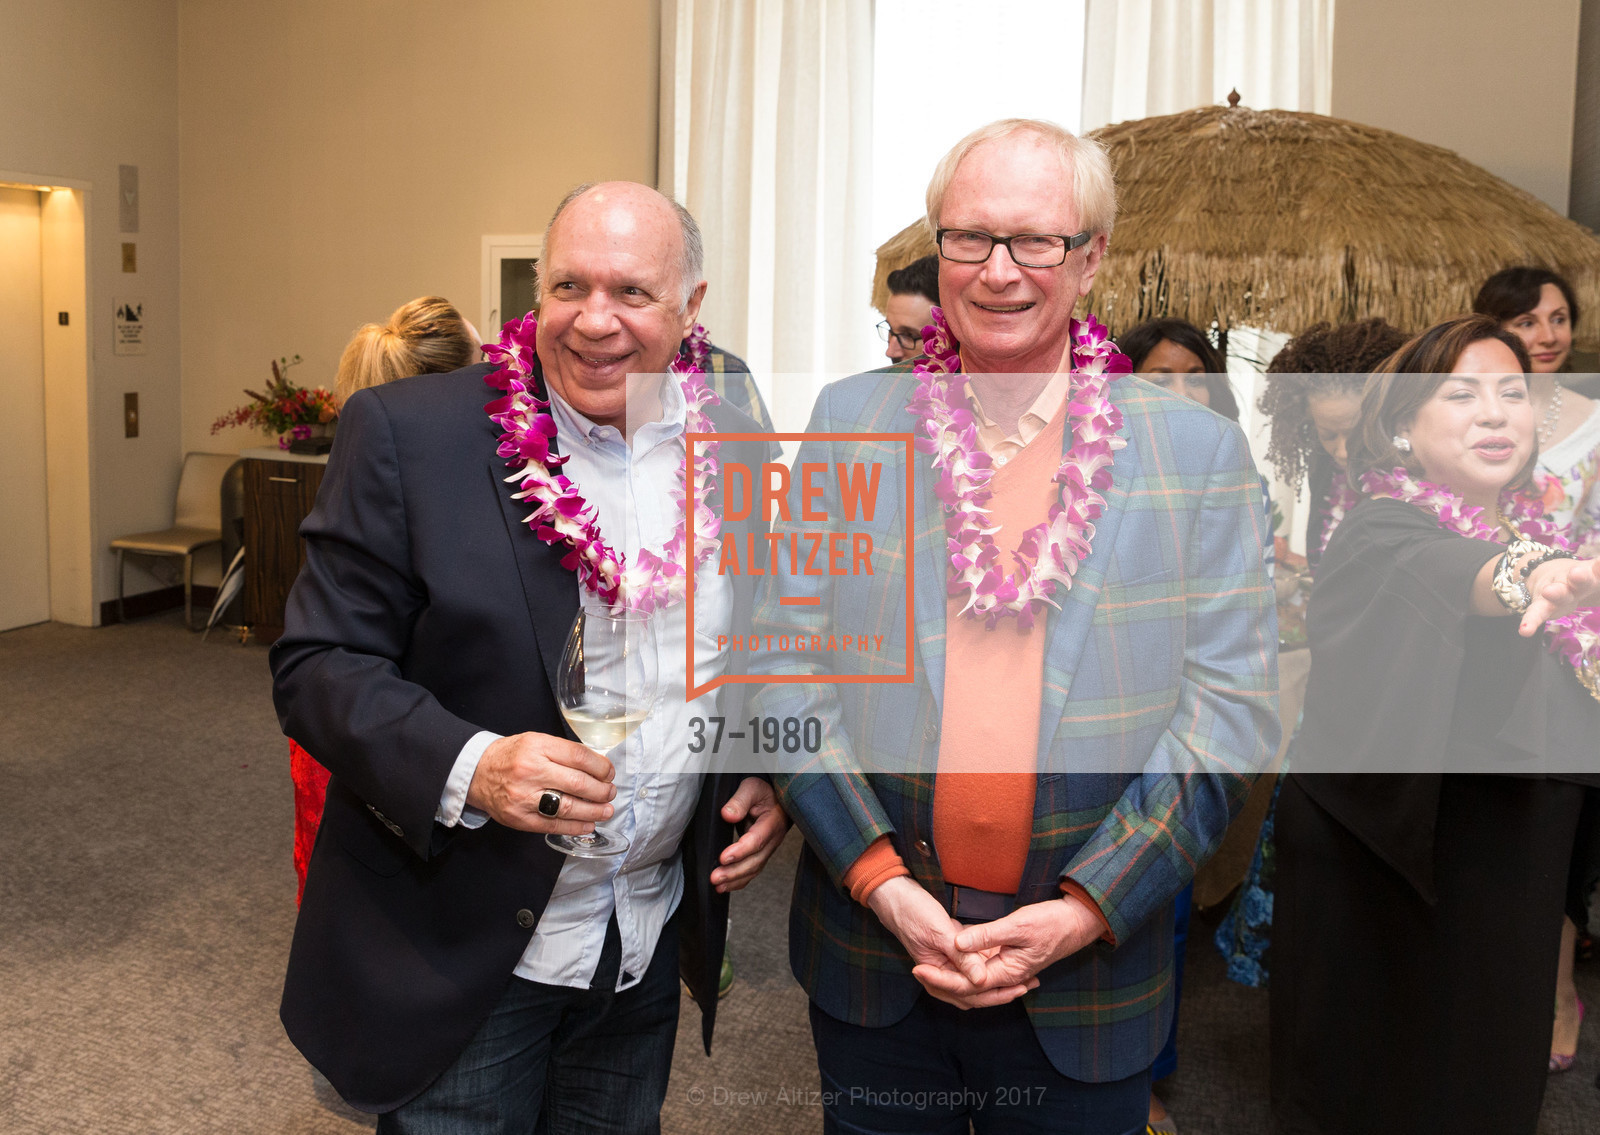 Bill Hales, Ed Winger, Aubrey Brewster's Purely Paradise Birthday Luncheon 2017, Neiman Marcus. 150 Stockton St  SF, California 94108, March 24th, 2017